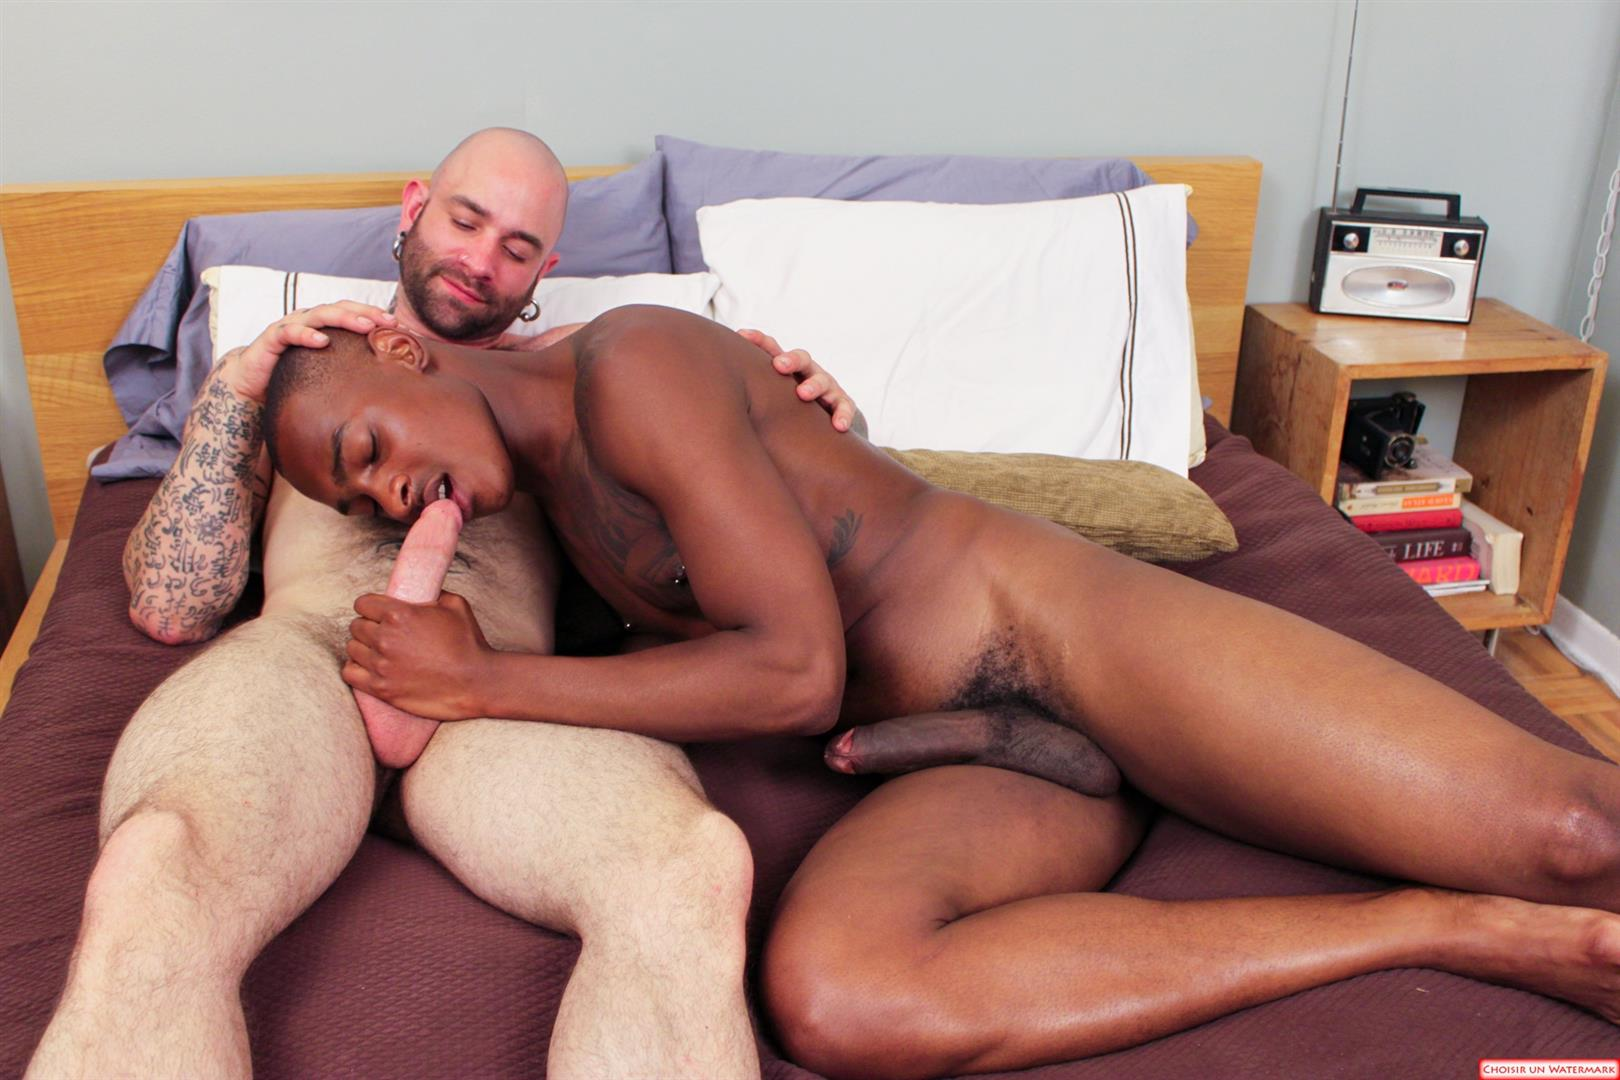 Next Door Ebony Sam Swift and Tyson Tyler Huge Cock Interracial Fucking Big Black Cock Amateur Gay Porn 10 Tyson Tyler Opens His Tight Black Ass Up For A Big White Cock